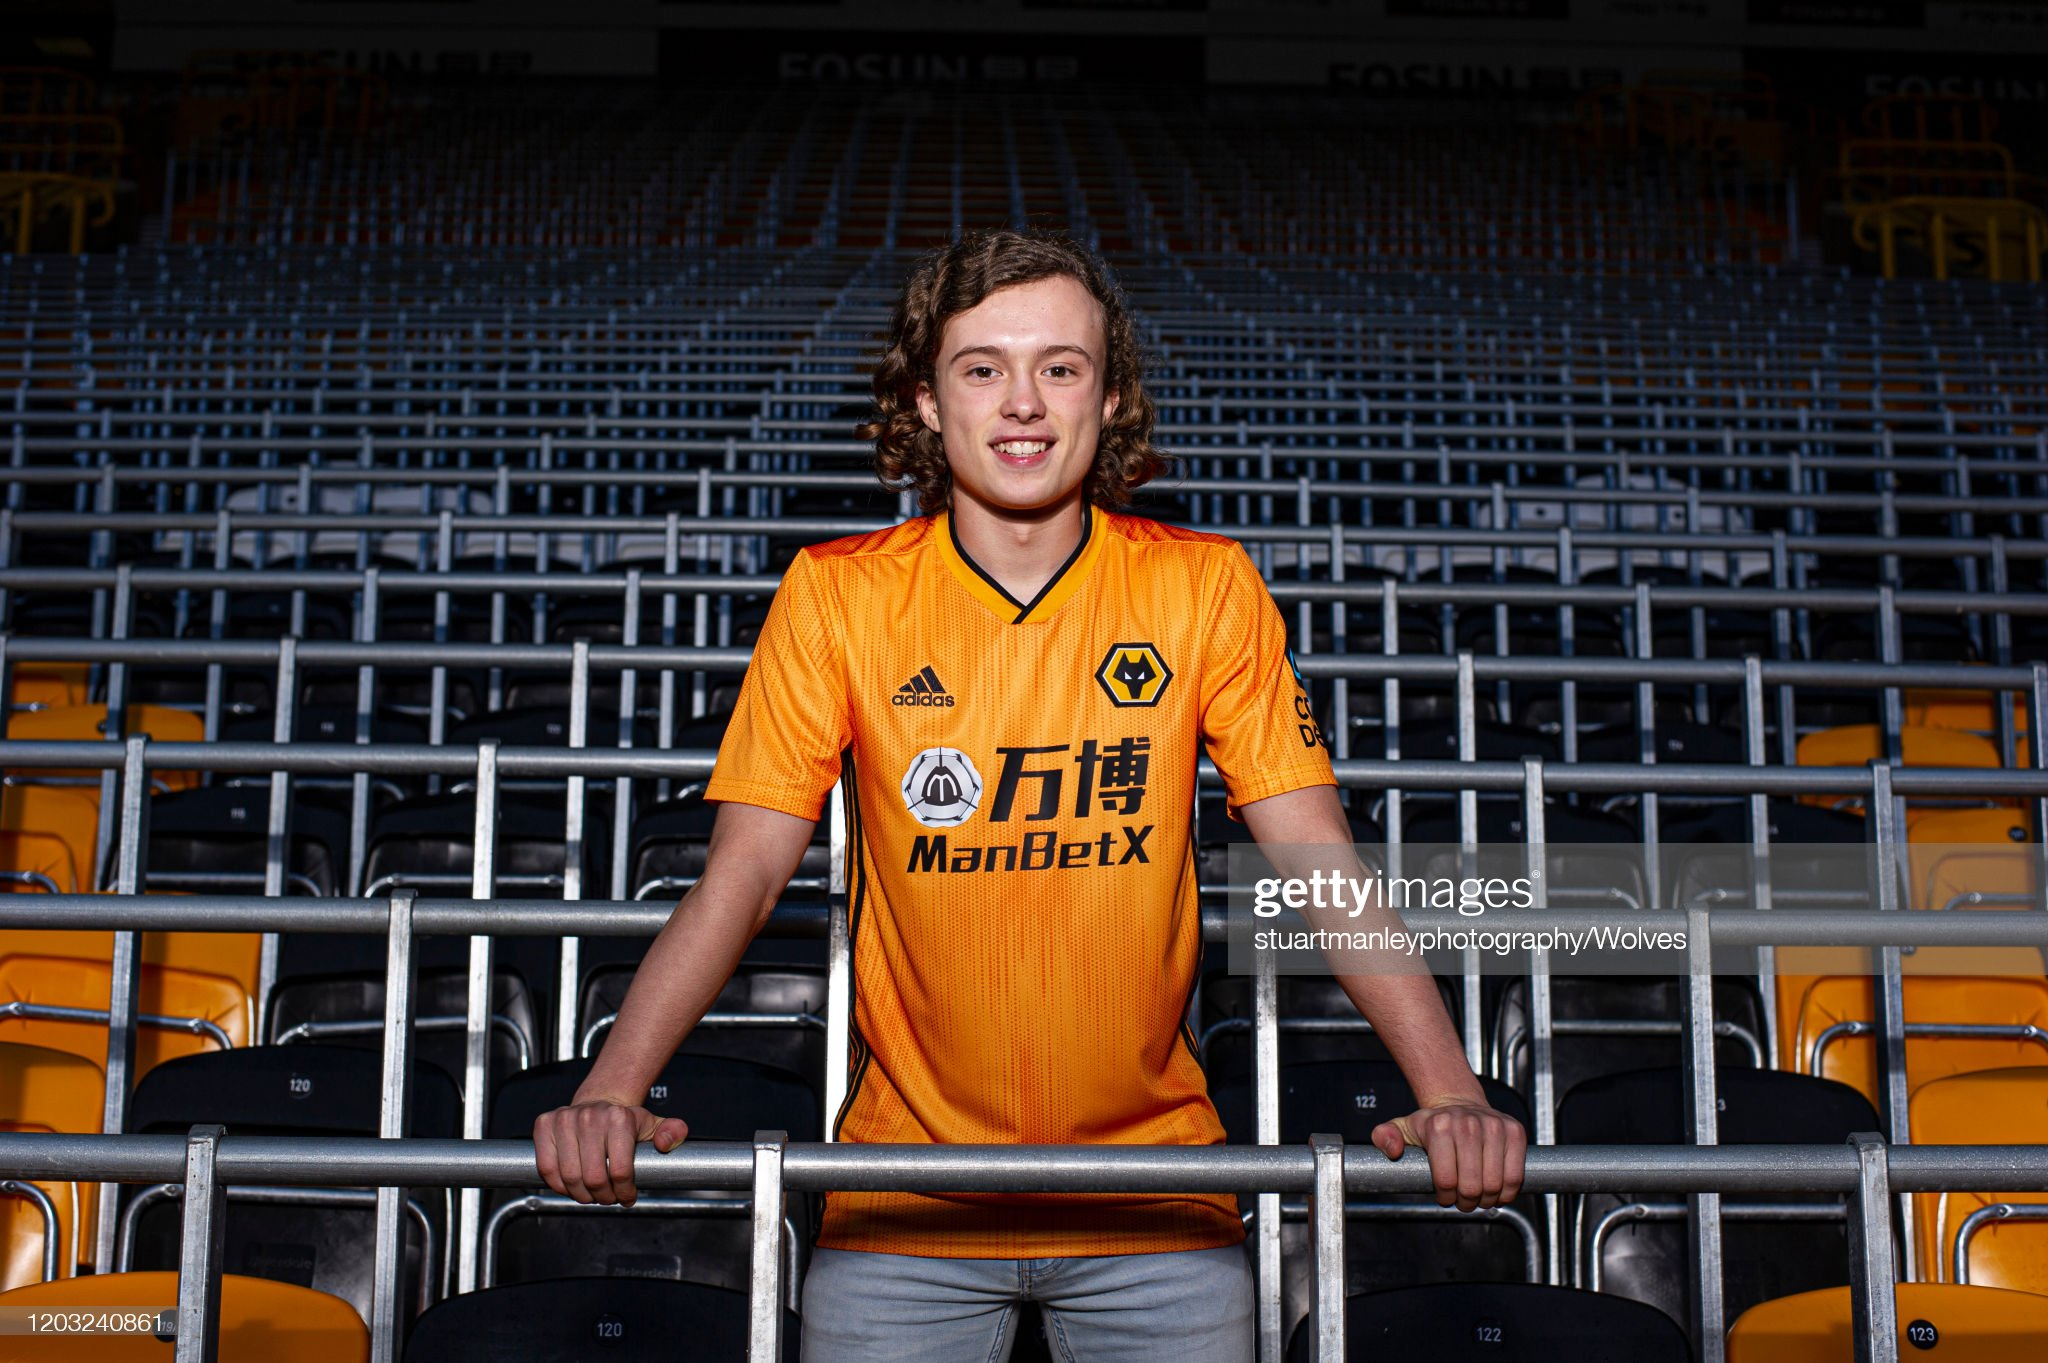 https://media.gettyimages.com/photos/luke-matheson-of-wolverhamptoin-wanderers-poses-for-a-portrait-his-picture-id1203240861?s=2048x2048